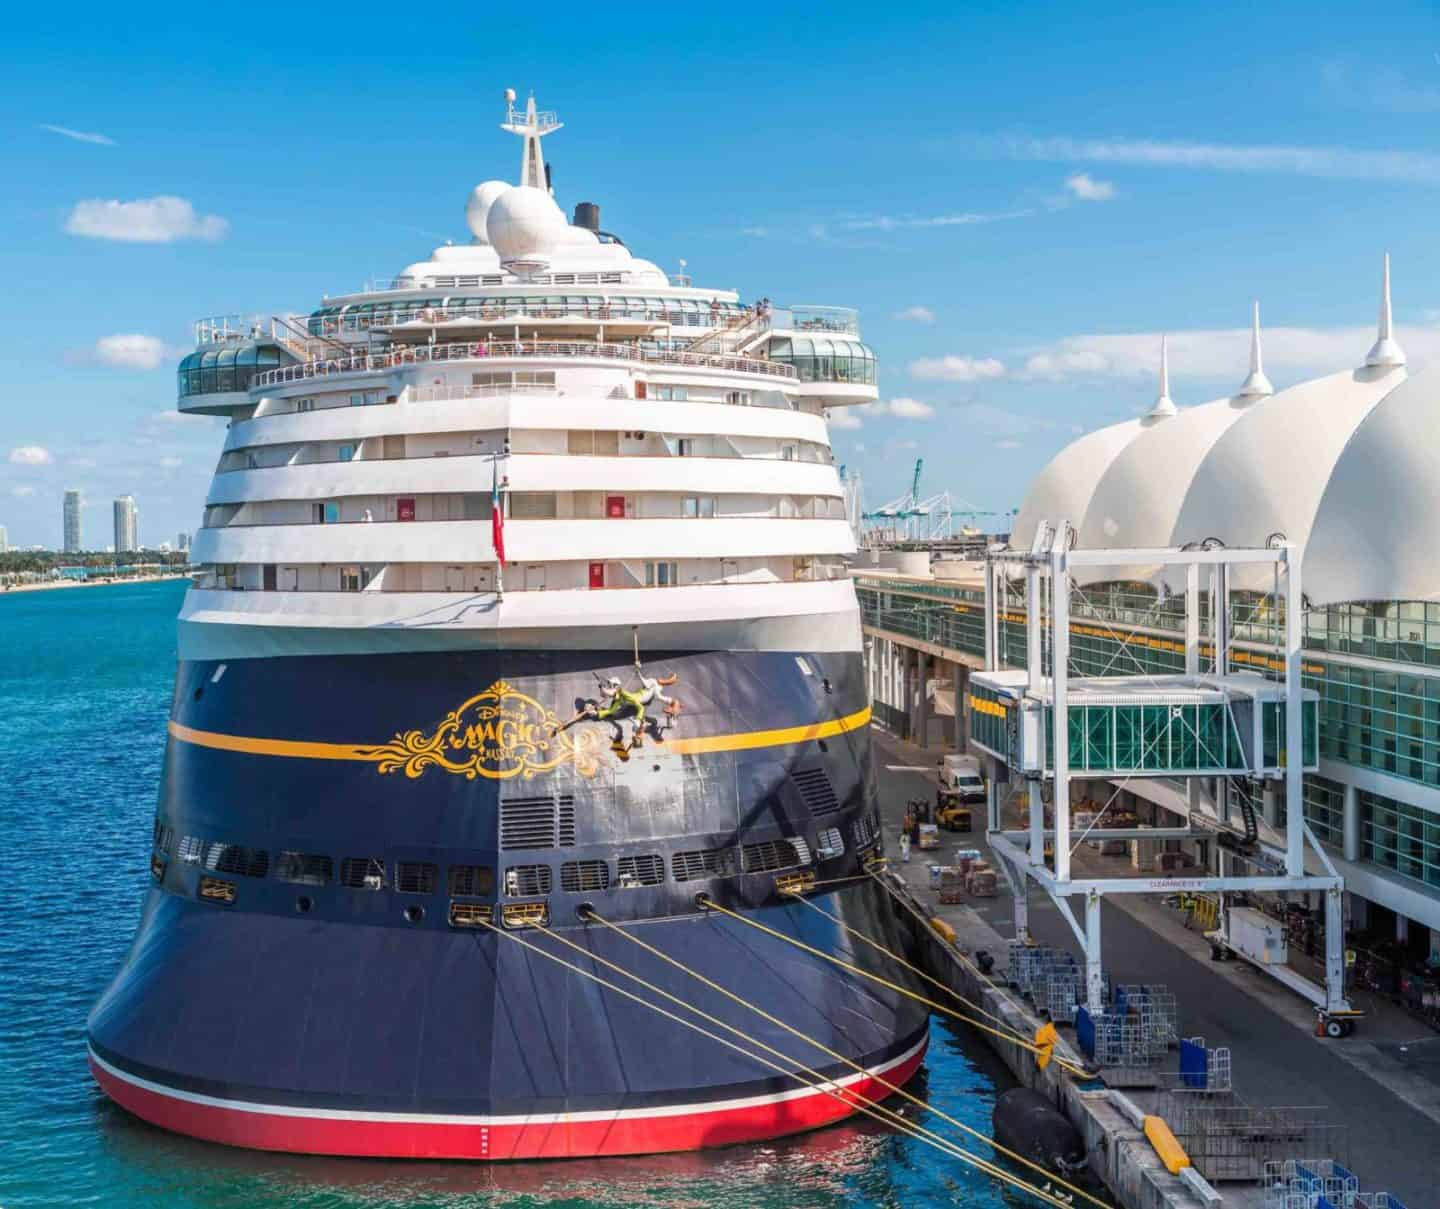 Top 10 First Time Disney Cruise Tips